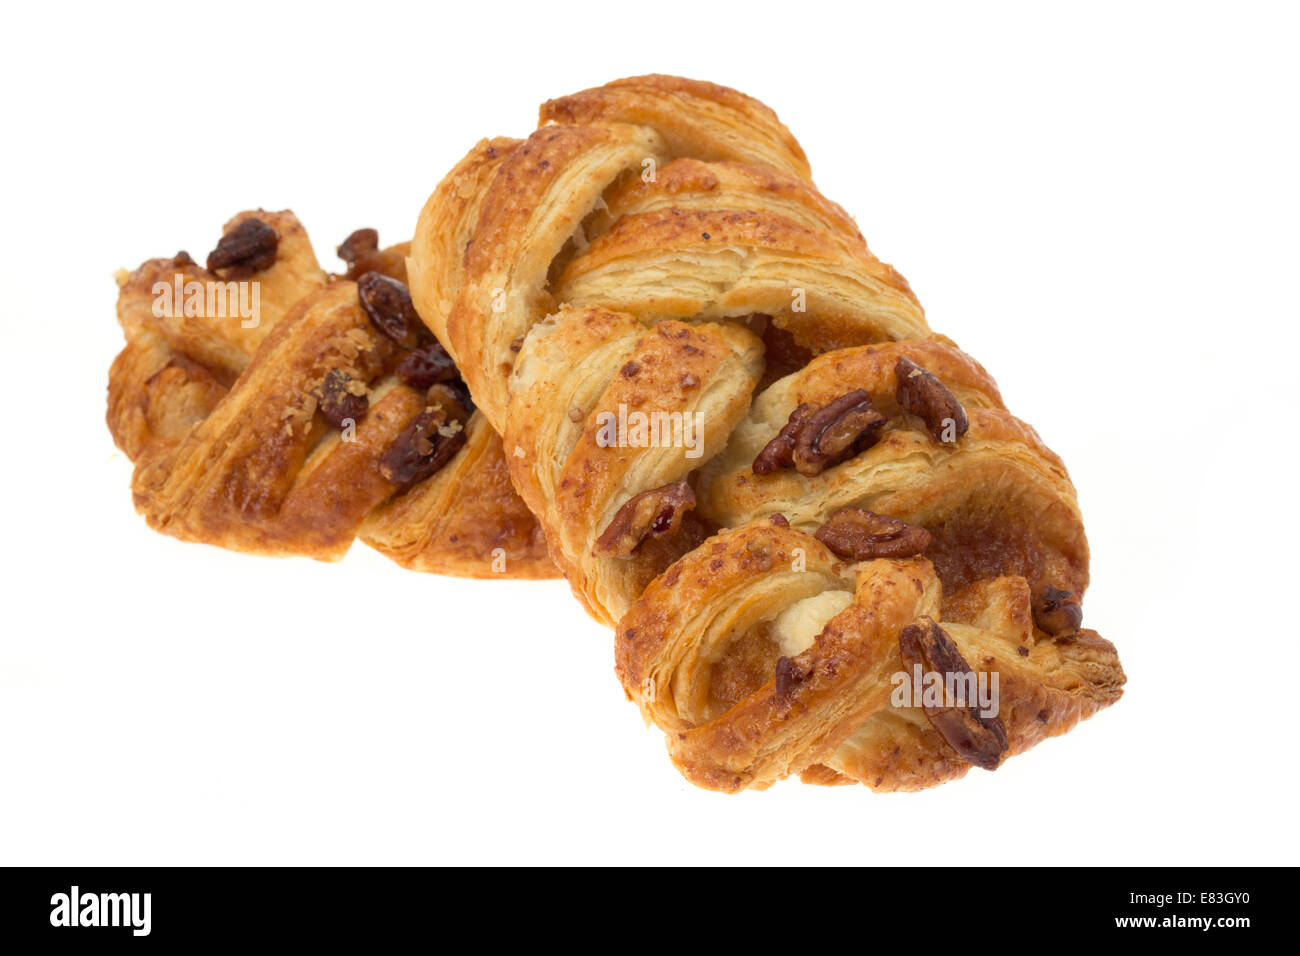 Two pecan plait pastries - studio shot with a white background - Stock Image